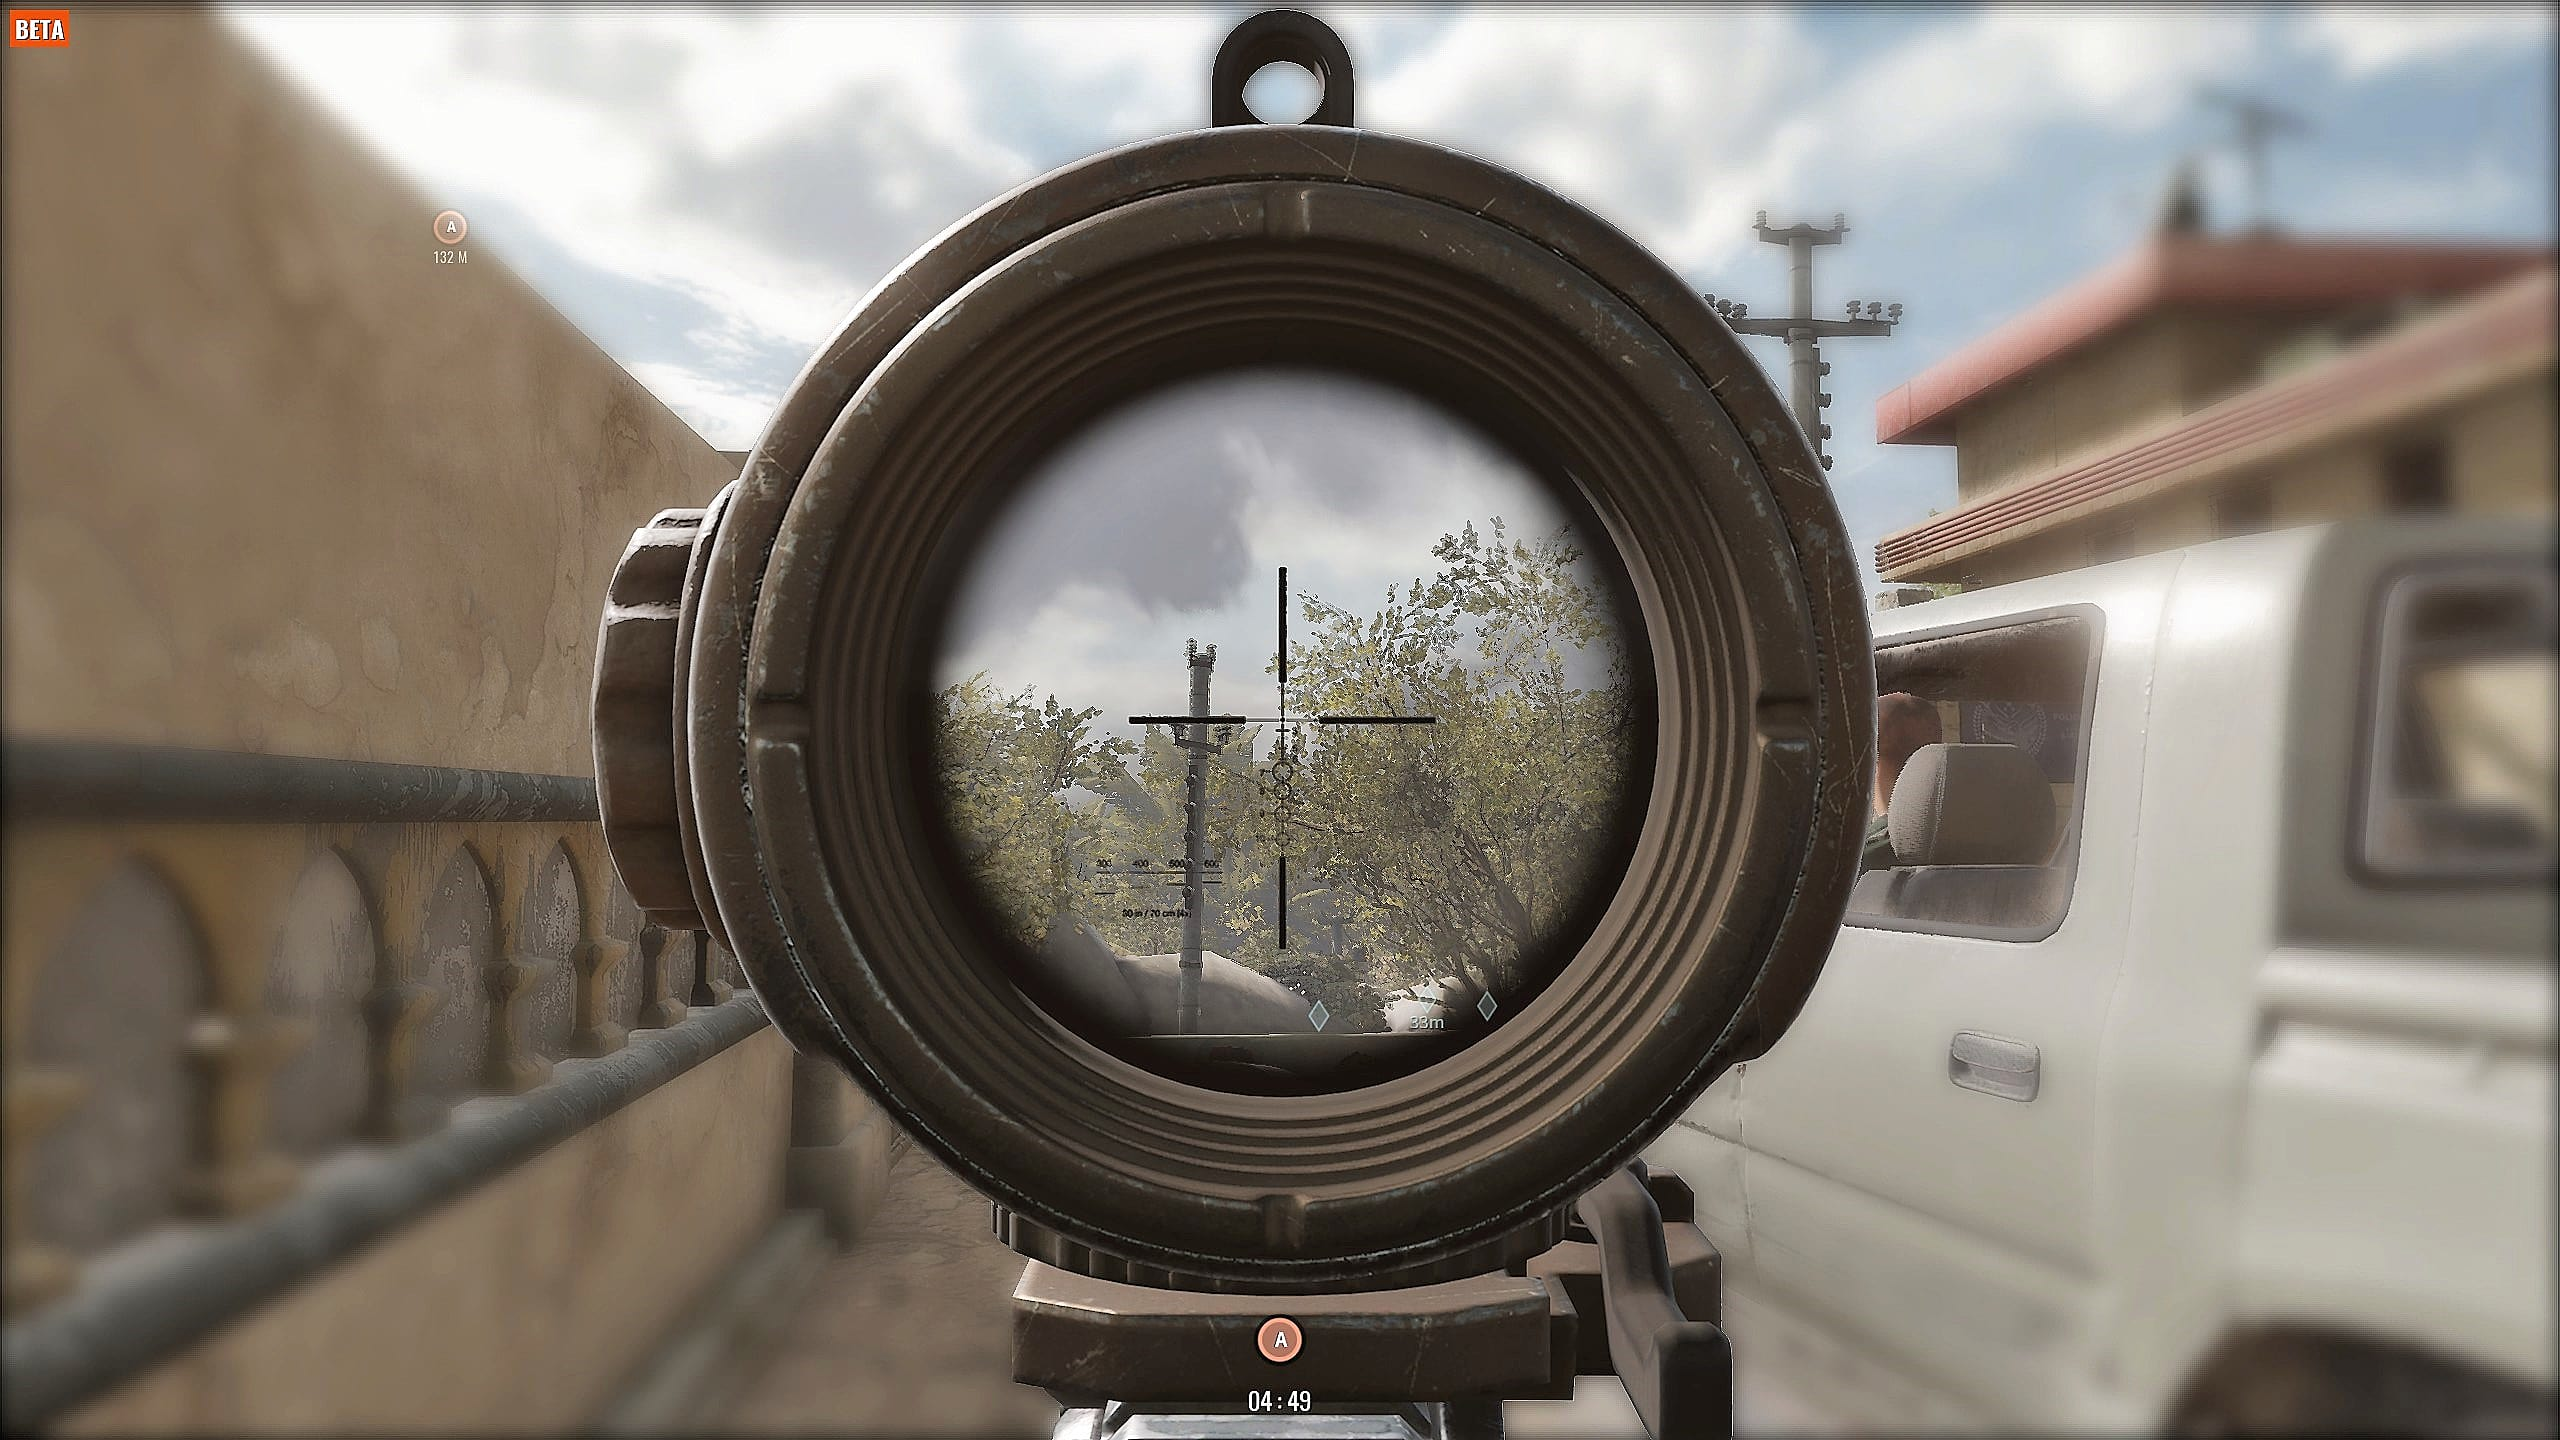 Insurgency Sandstorm Beta Review: A Promising Tactical FPS When It